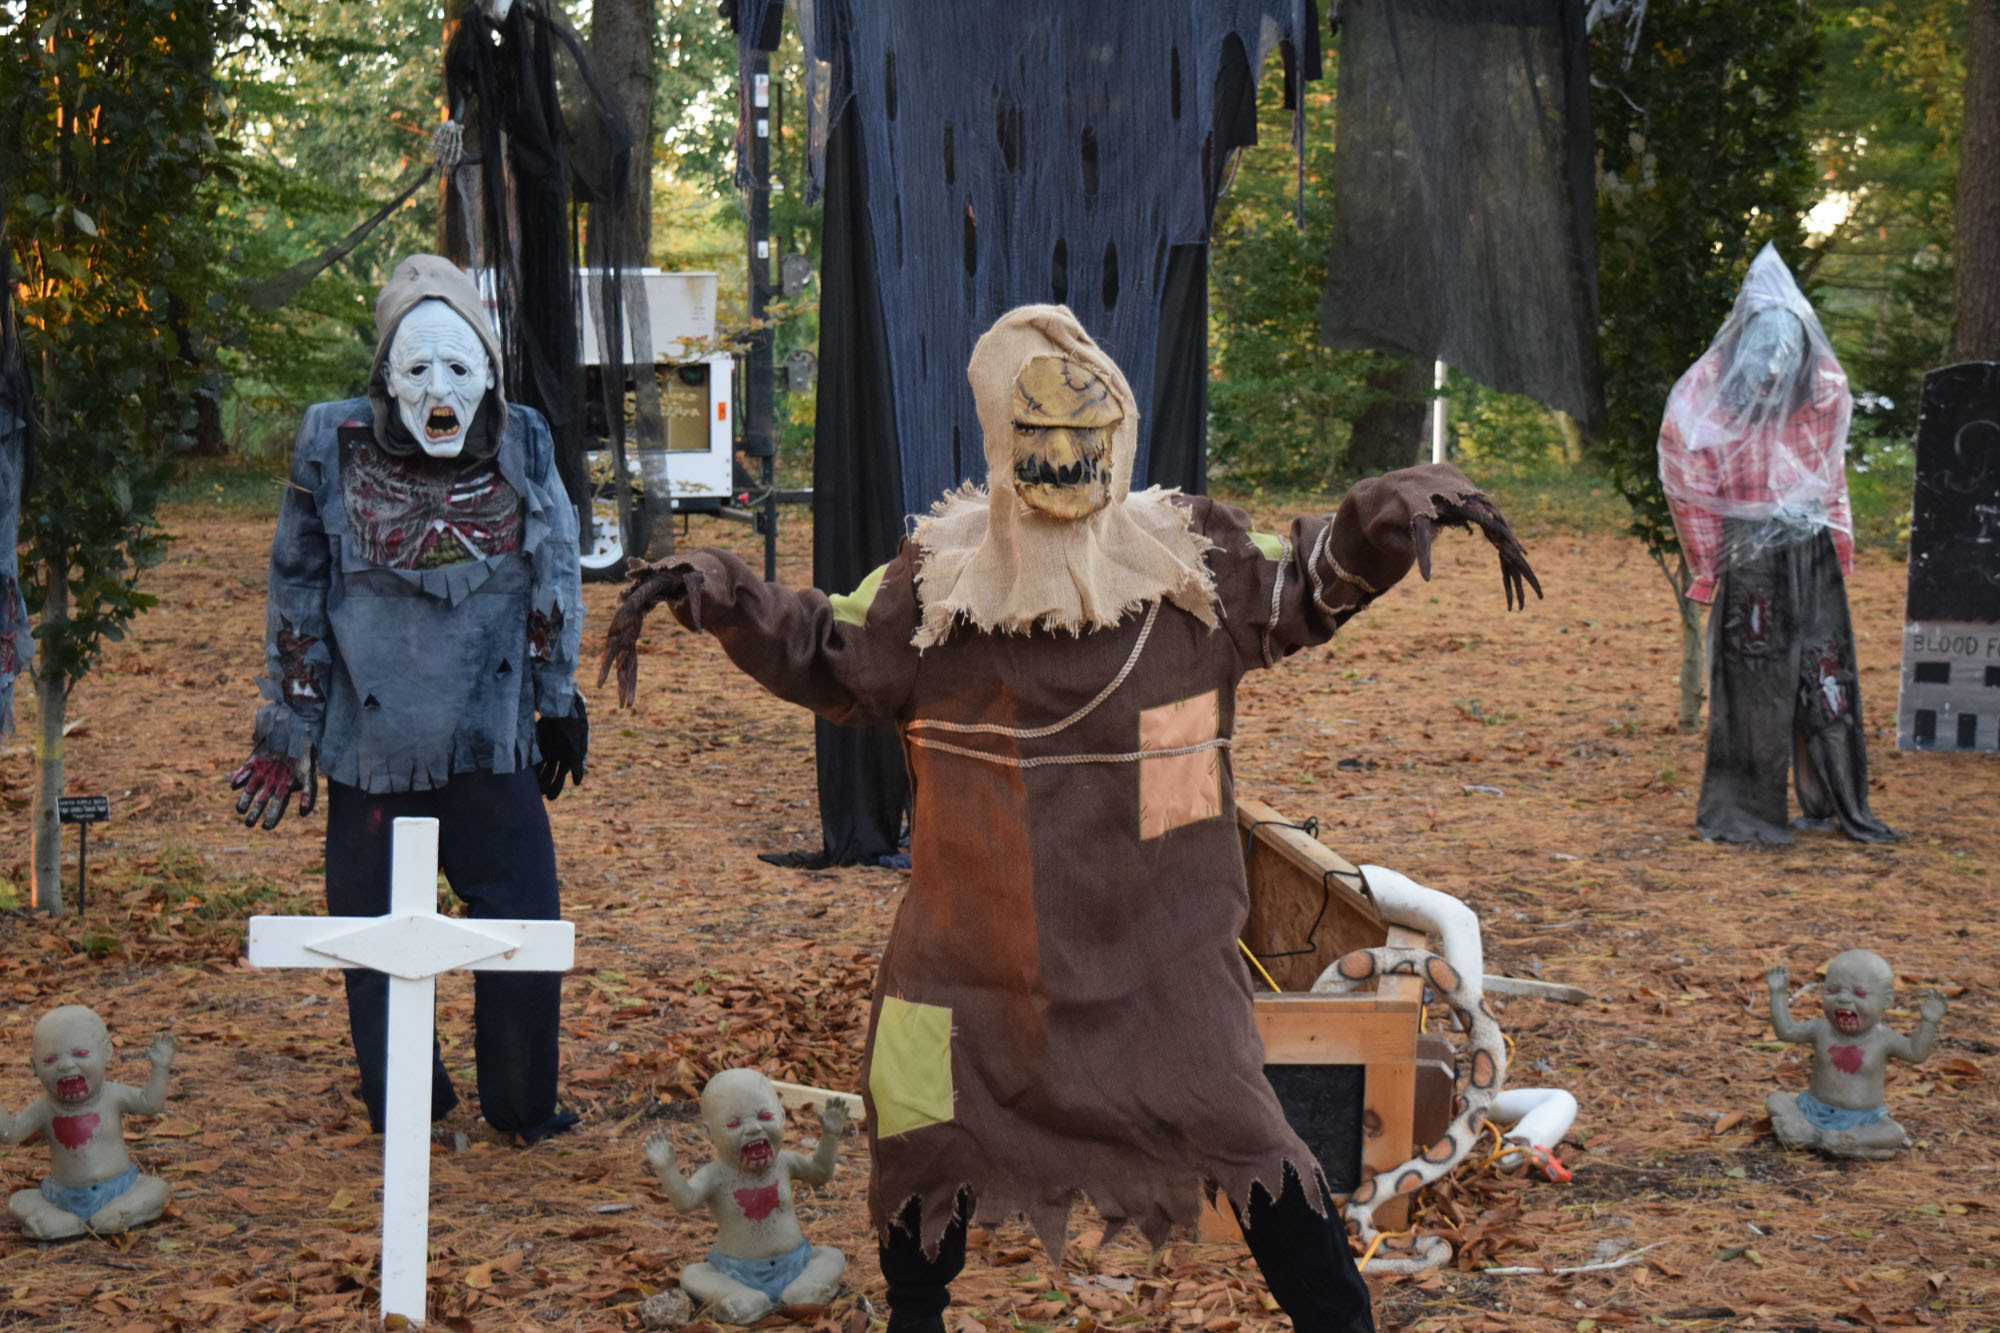 North Hempstead to host Spooky Walk and Not-So-Spooky Walk in Clark ...